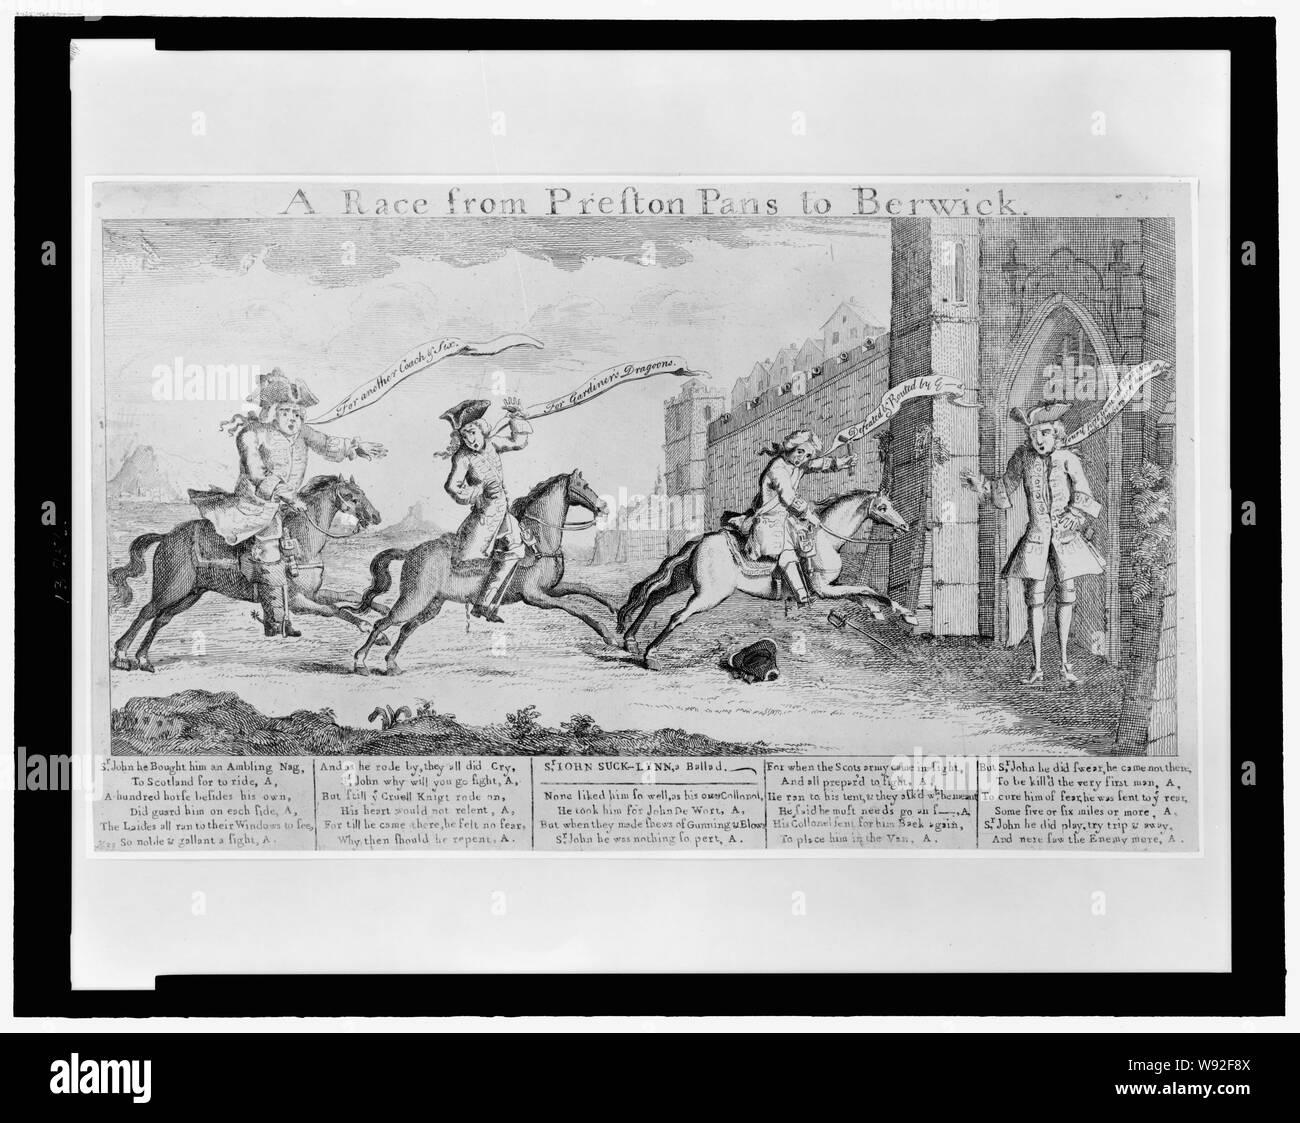 A  Race from Preston Pans to Berwick Abstract: Print shows General Sir John Cope and two other British officers riding to the gates of Berwick and announcing the defeat of British forces at Prestonpans by the Scots under the leadership of Charles Edward Stuart. The test under the image ridicules Cope's behavior during the battle. Stock Photo